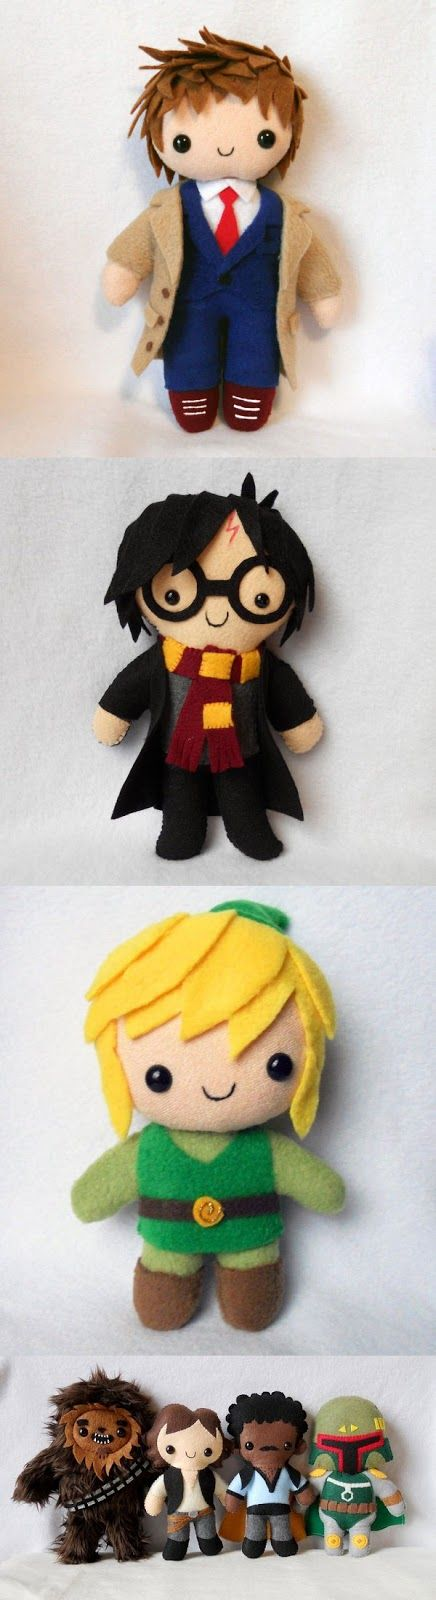 How adorable are these?! No instructions, but what a cute idea for felt dolls for your favorite nerd.